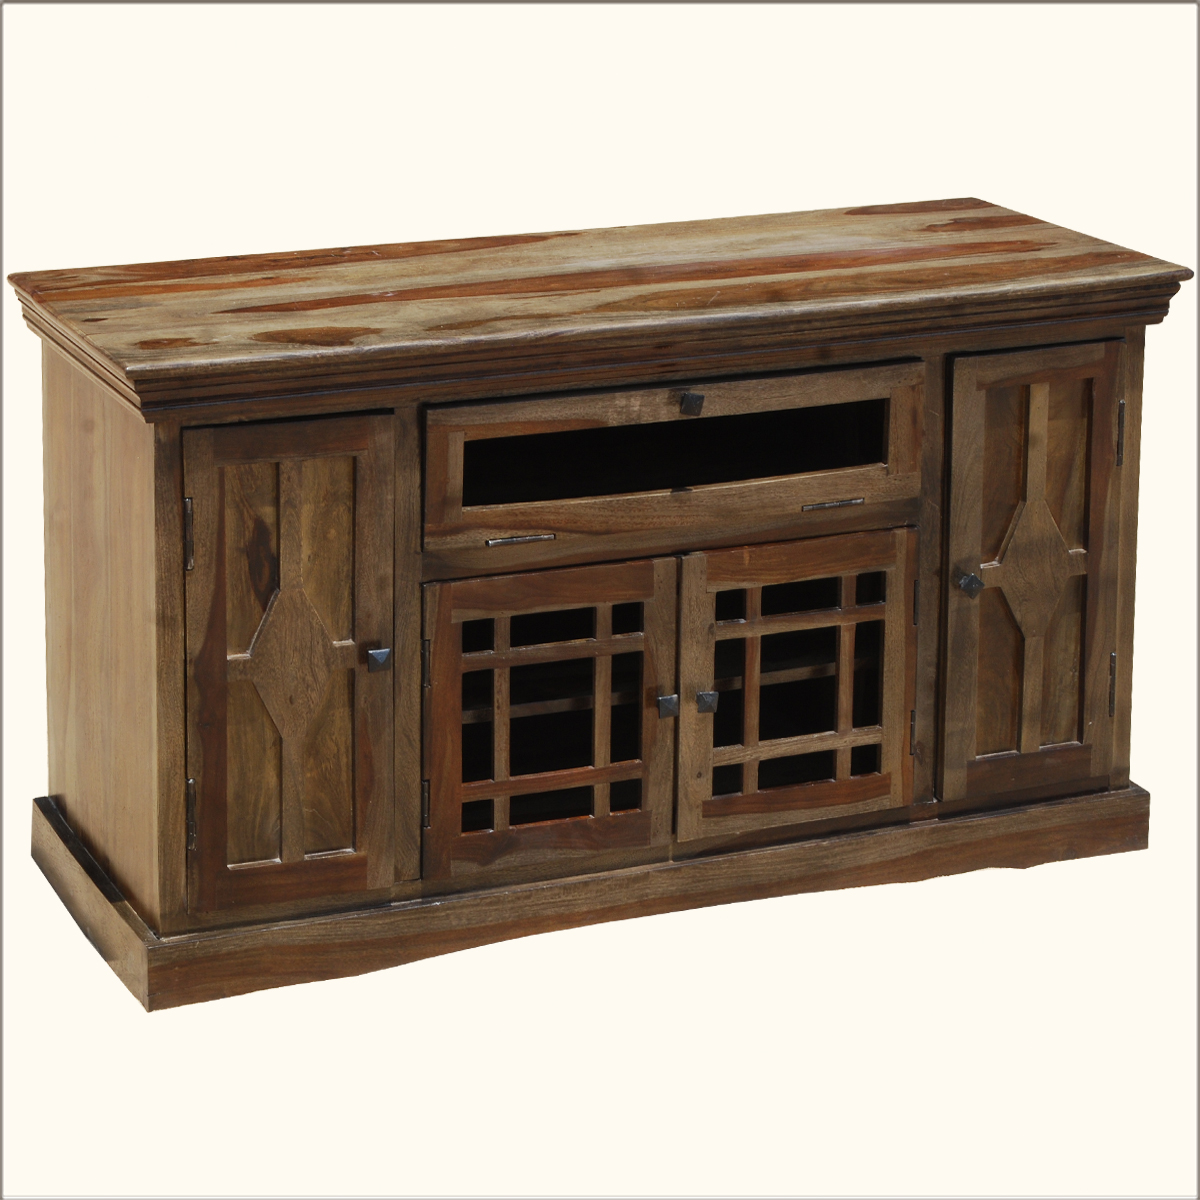 Contemporary wood entertainment tv stand media center cabinet console furniture ebay Wooden entertainment center furniture